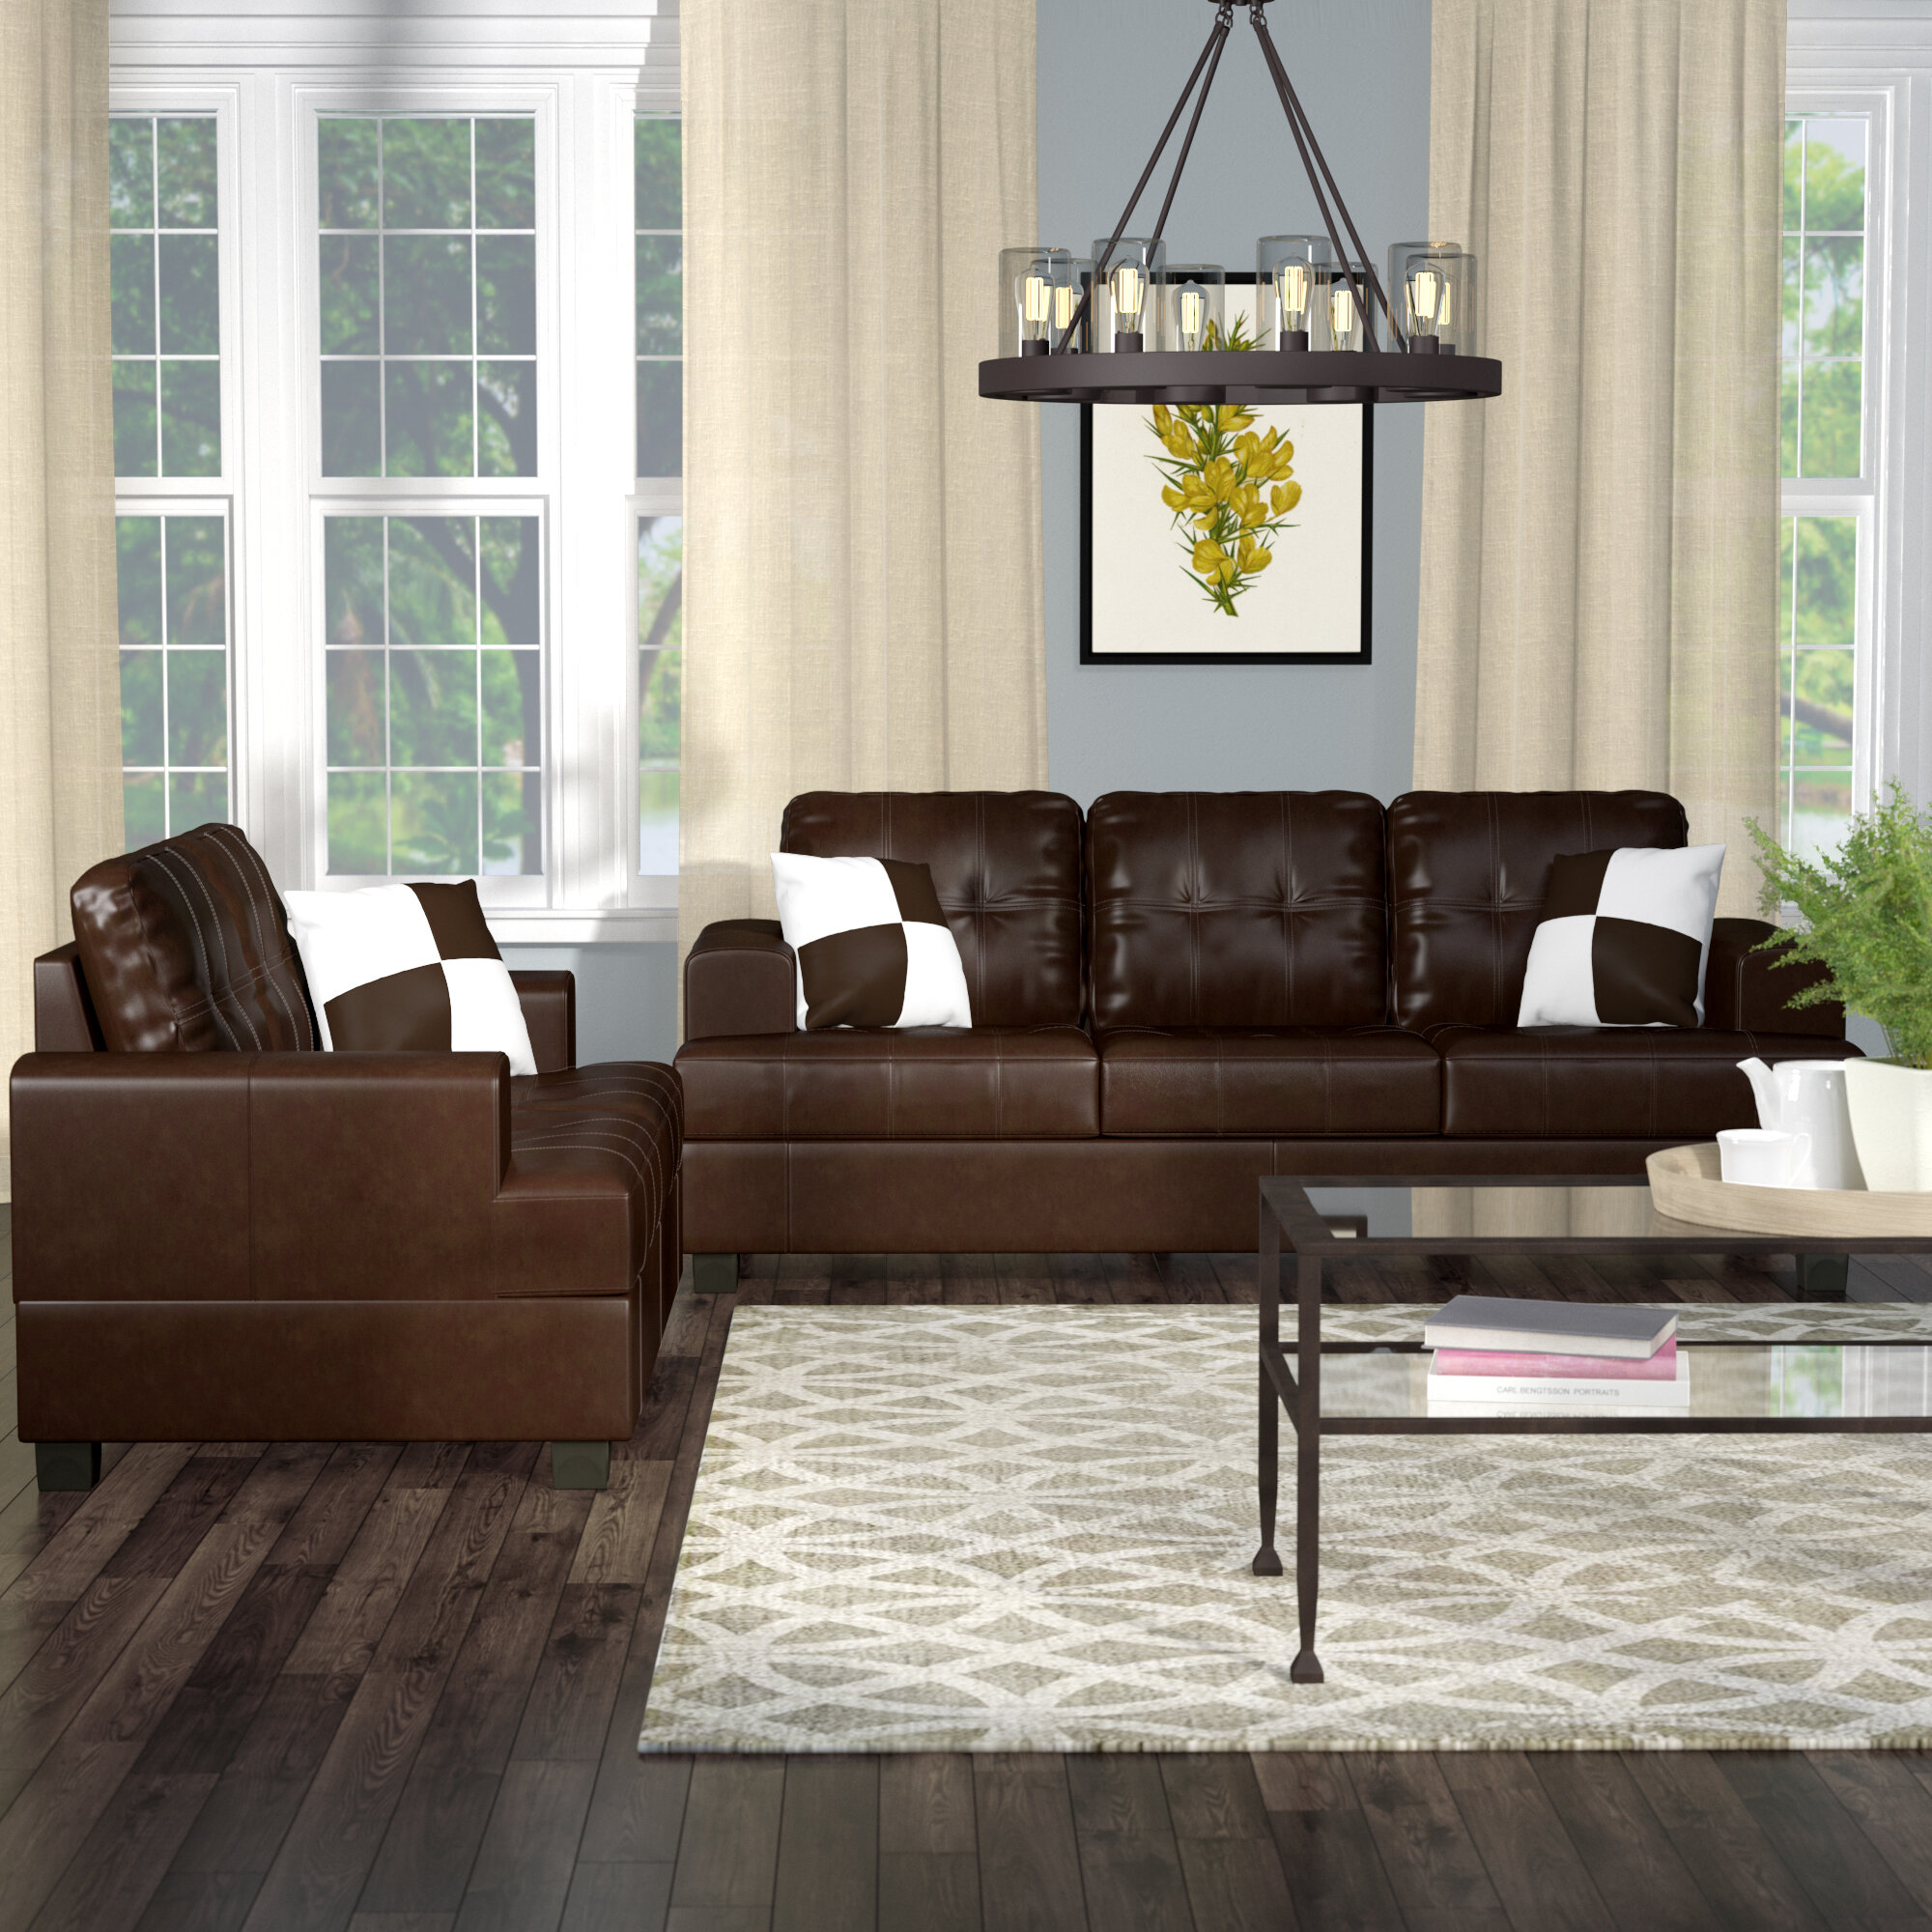 T Austin Design Wamsutter 5 Piece Living Room Set Reviews Wayfair